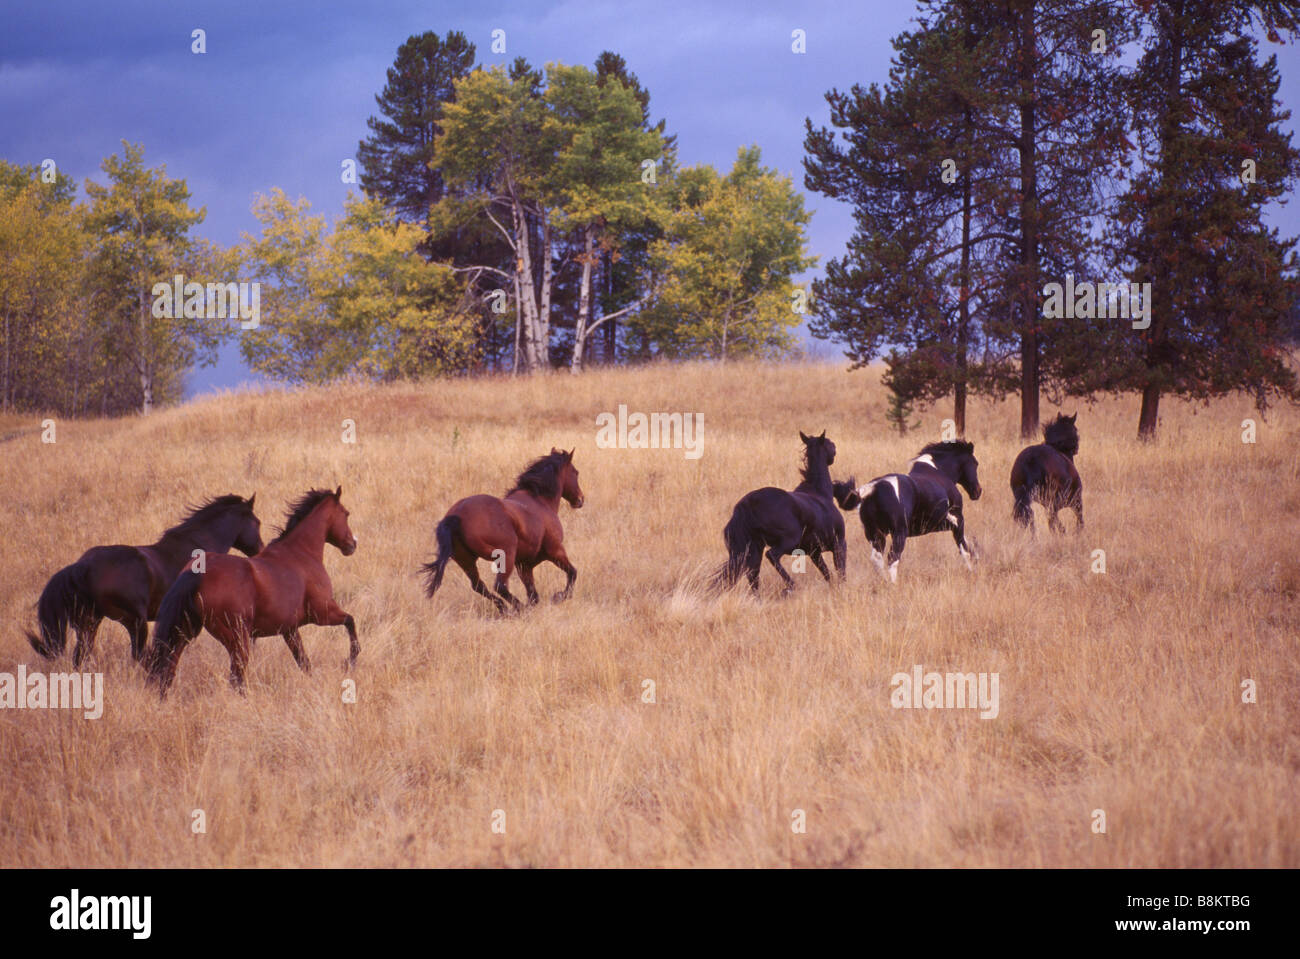 A Herd Of Free Roaming Wild Horses Running On Ranchland At A Ranch Stock Photo Alamy